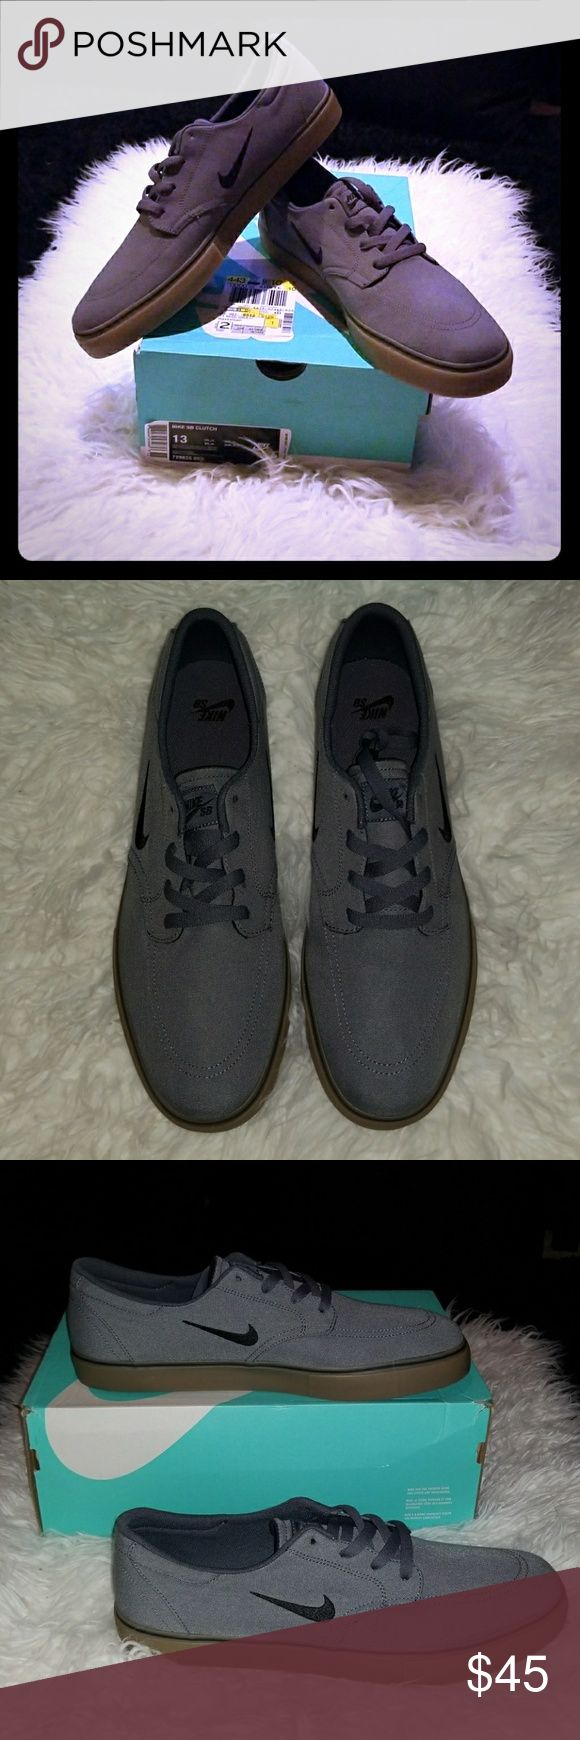 Brand New Nike SB Portmore Skate Shoes Brand new in box Nike men's size 13 SB clutch Portmore Li skate shoe. Dark grey black and light brown. Nike Shoes Athletic Shoes